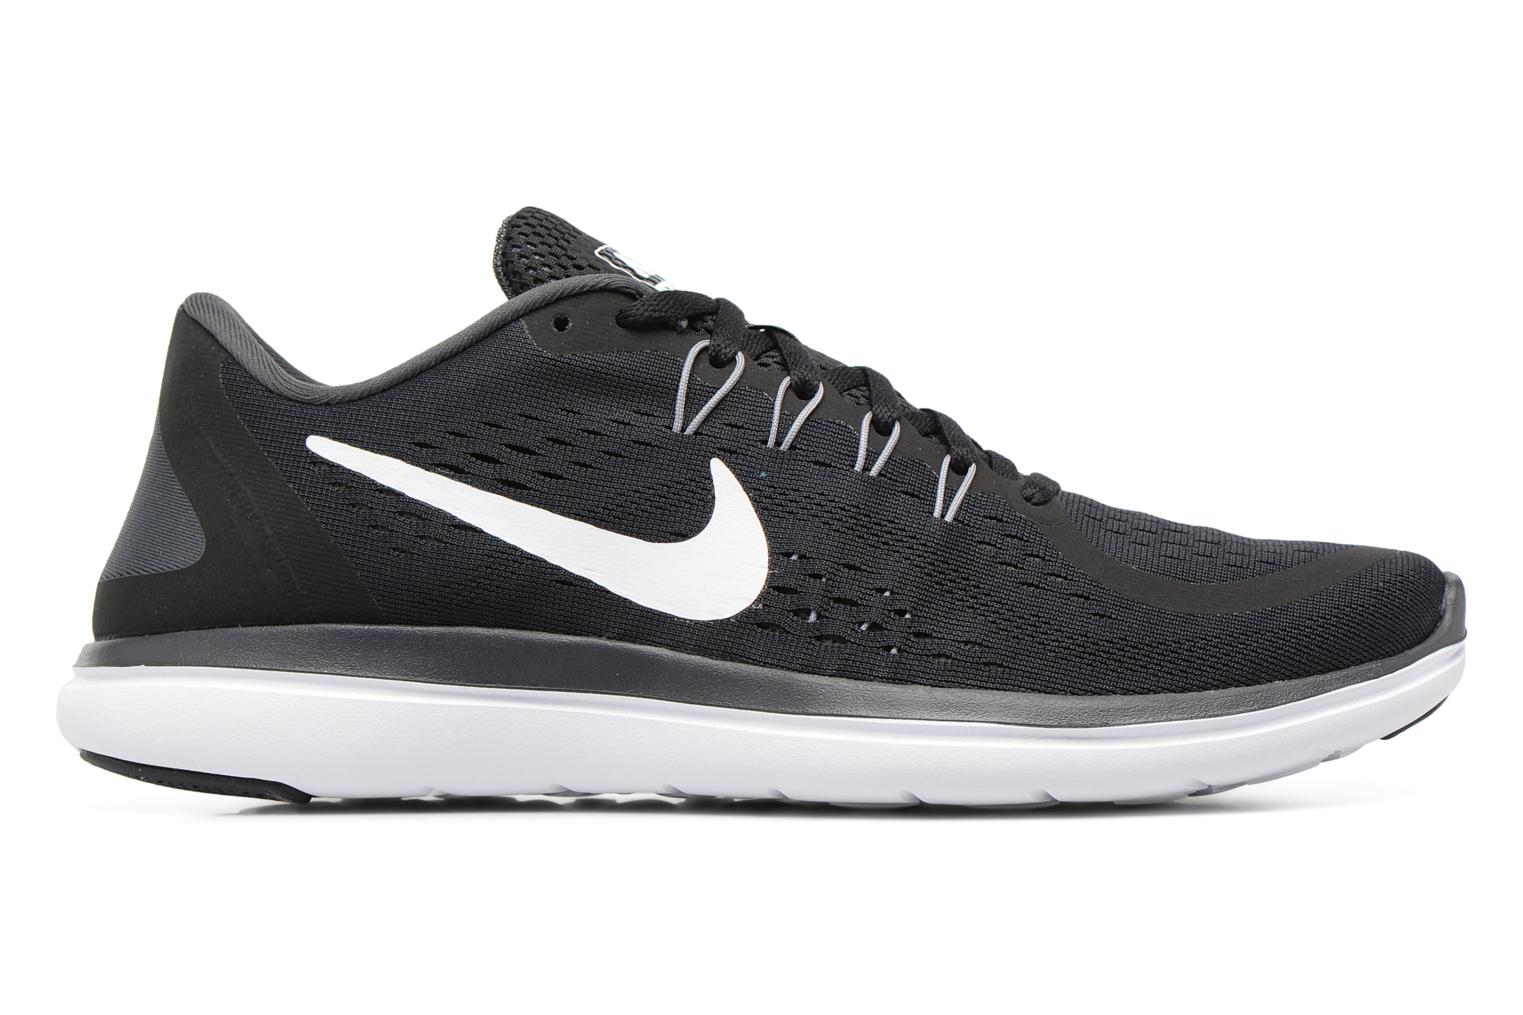 Nike Flex 2017 Rn Black/White-Anthracite-Cool Grey